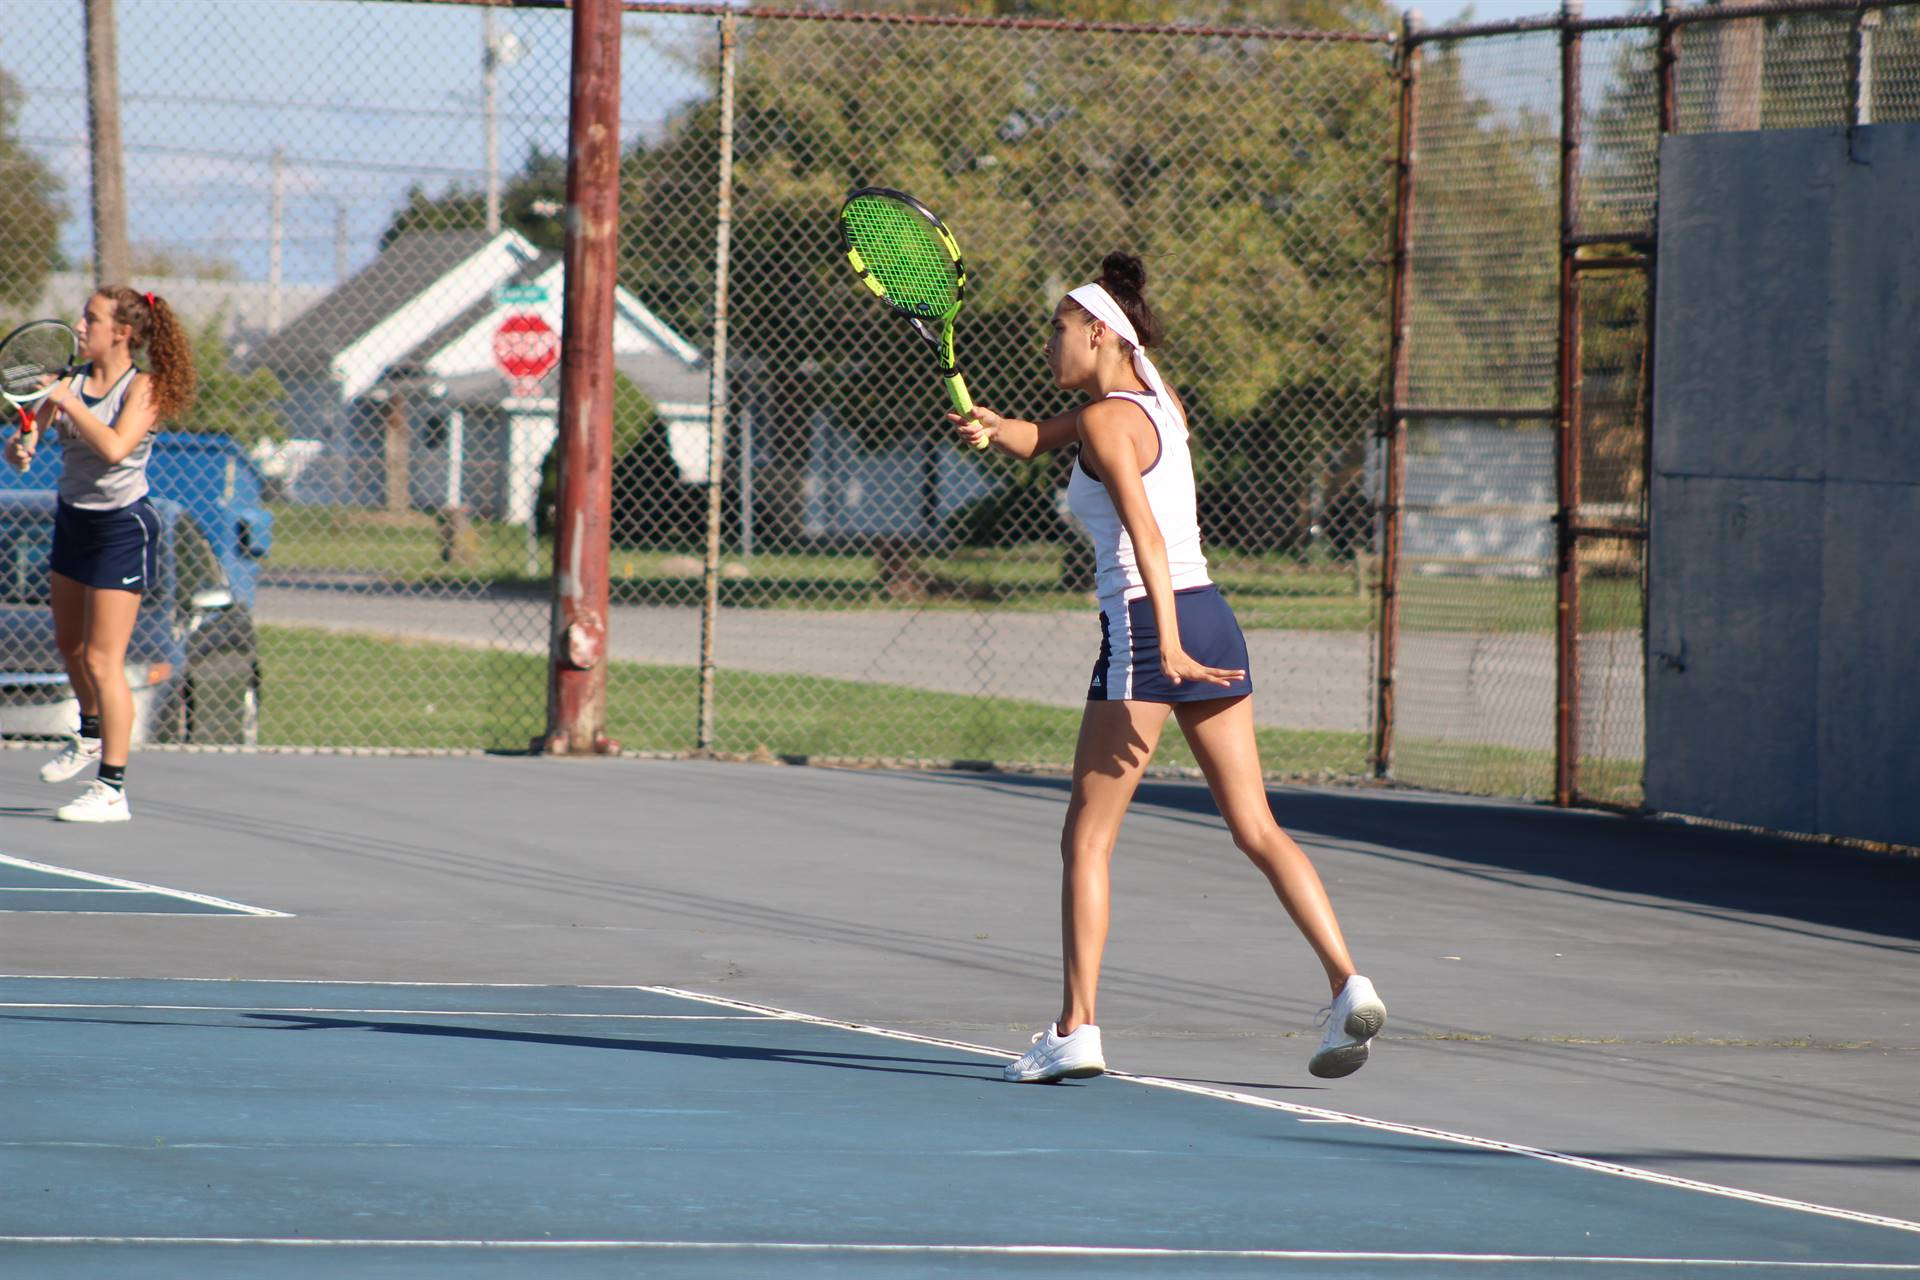 Student Playing Tennis